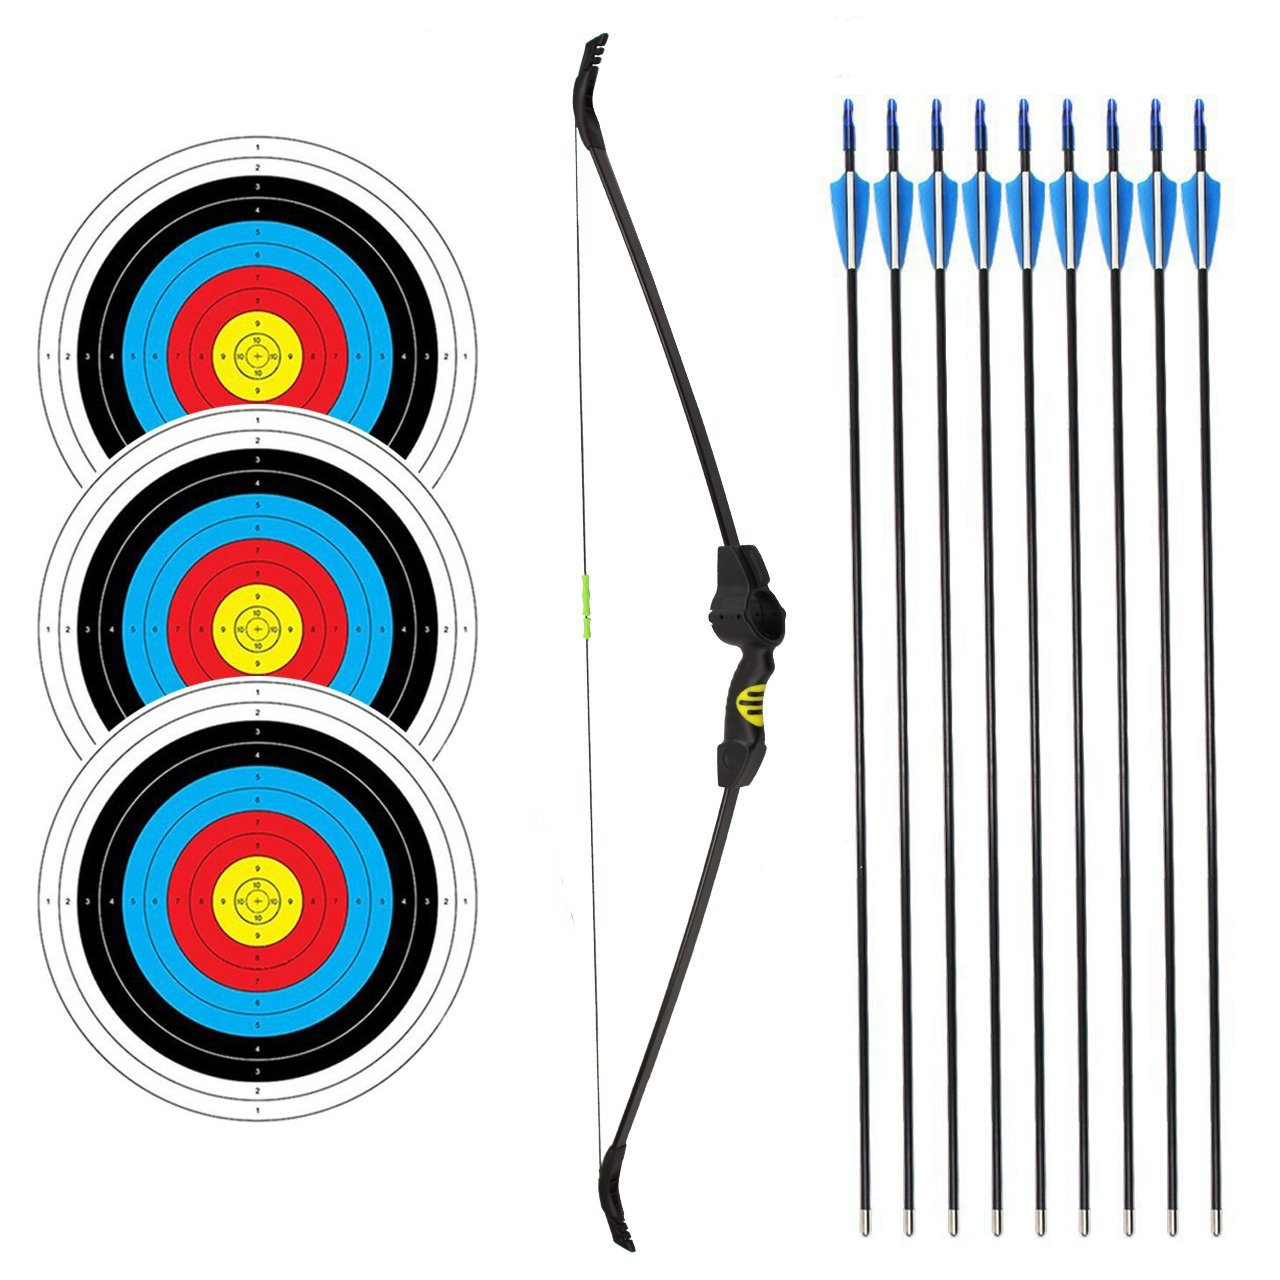 SinoArt Recurve Bow Adjustable Length 48.5''-50'' Draw Weight 14-16 Lb Right and Left Hand with 9 Arrows and 3 Target Faces